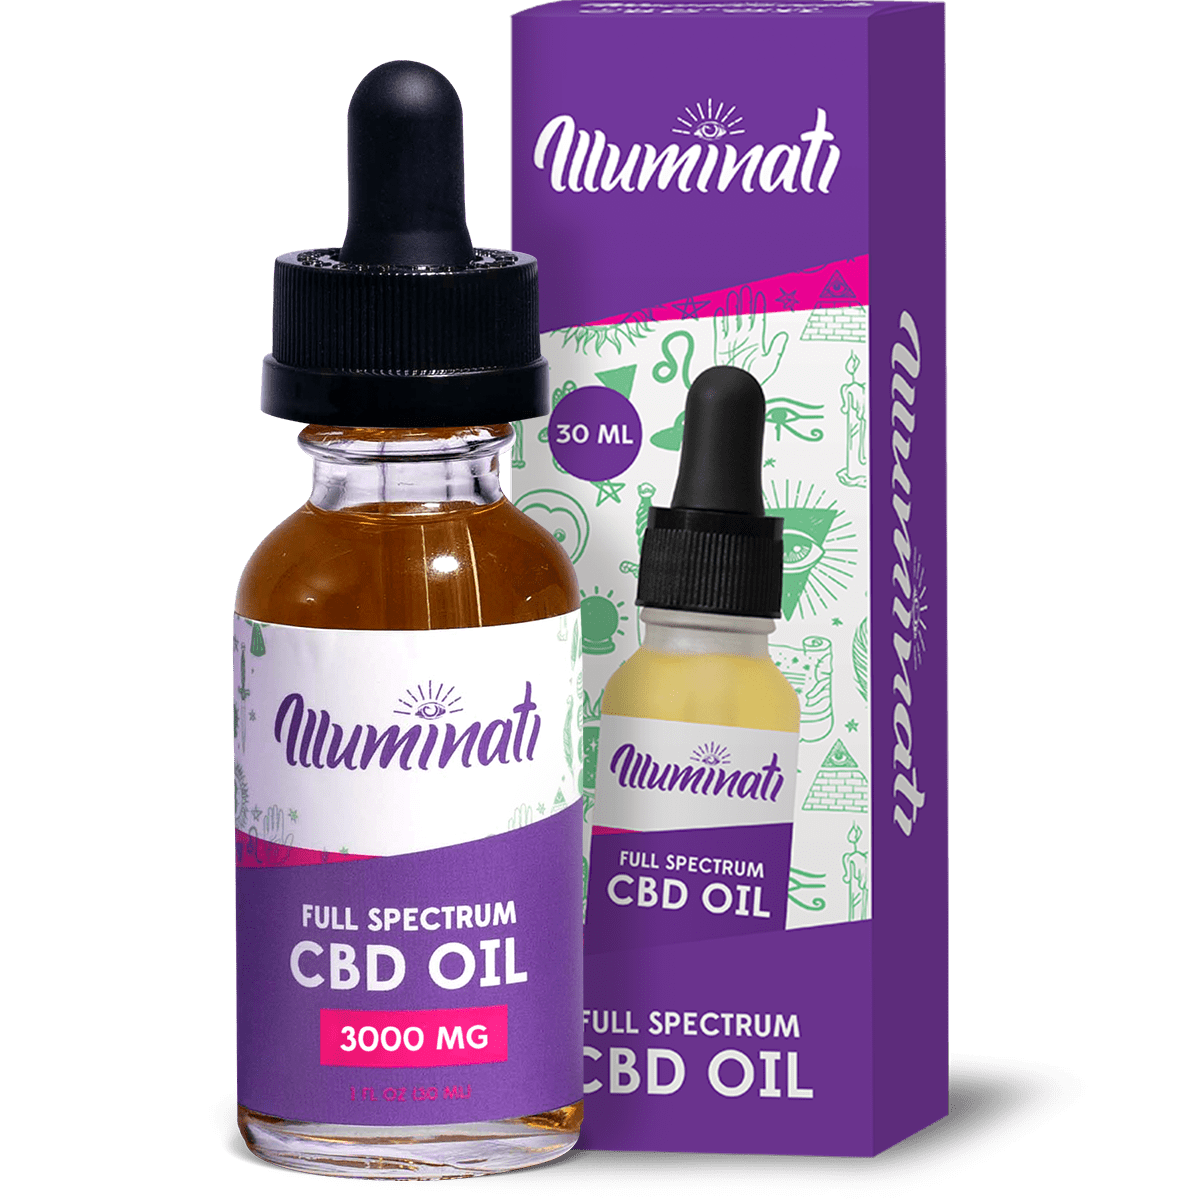 Illuminati CBD Oil Drops 3000mg